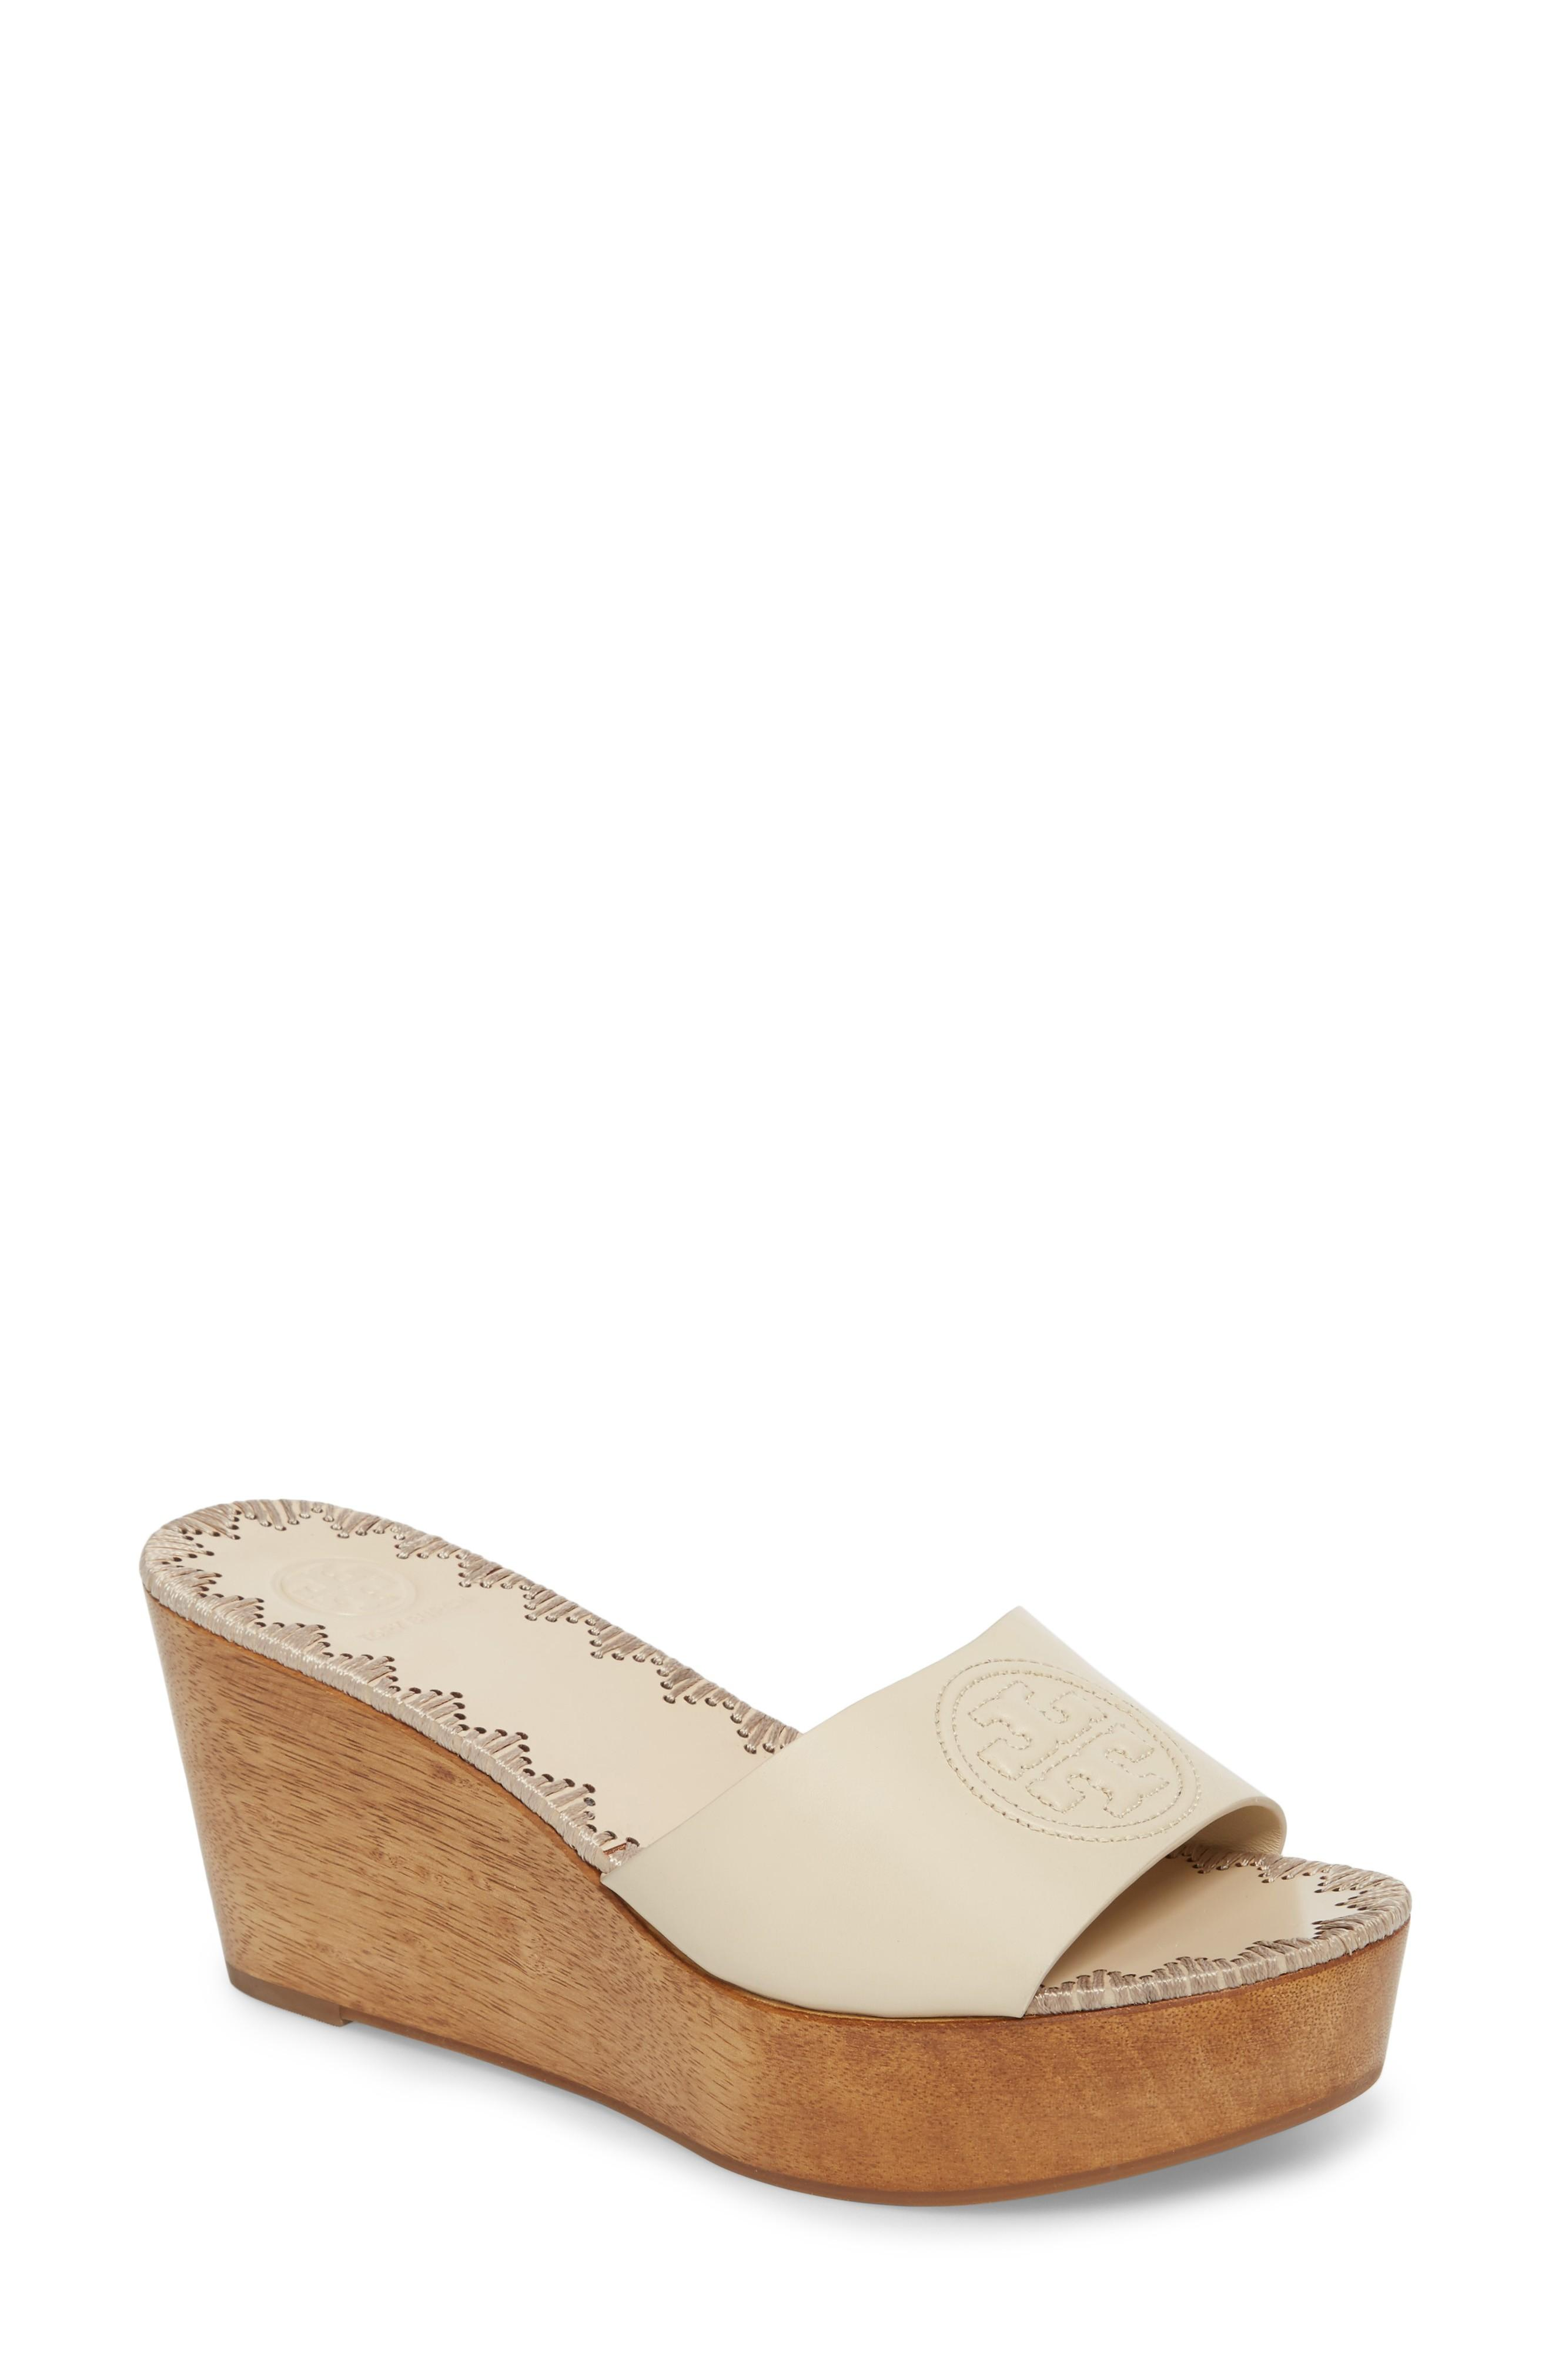 cedbac759956 TORY BURCH. Women s Patty Leather Platform Wedge Slide Sandals in Perfect  Cuoio